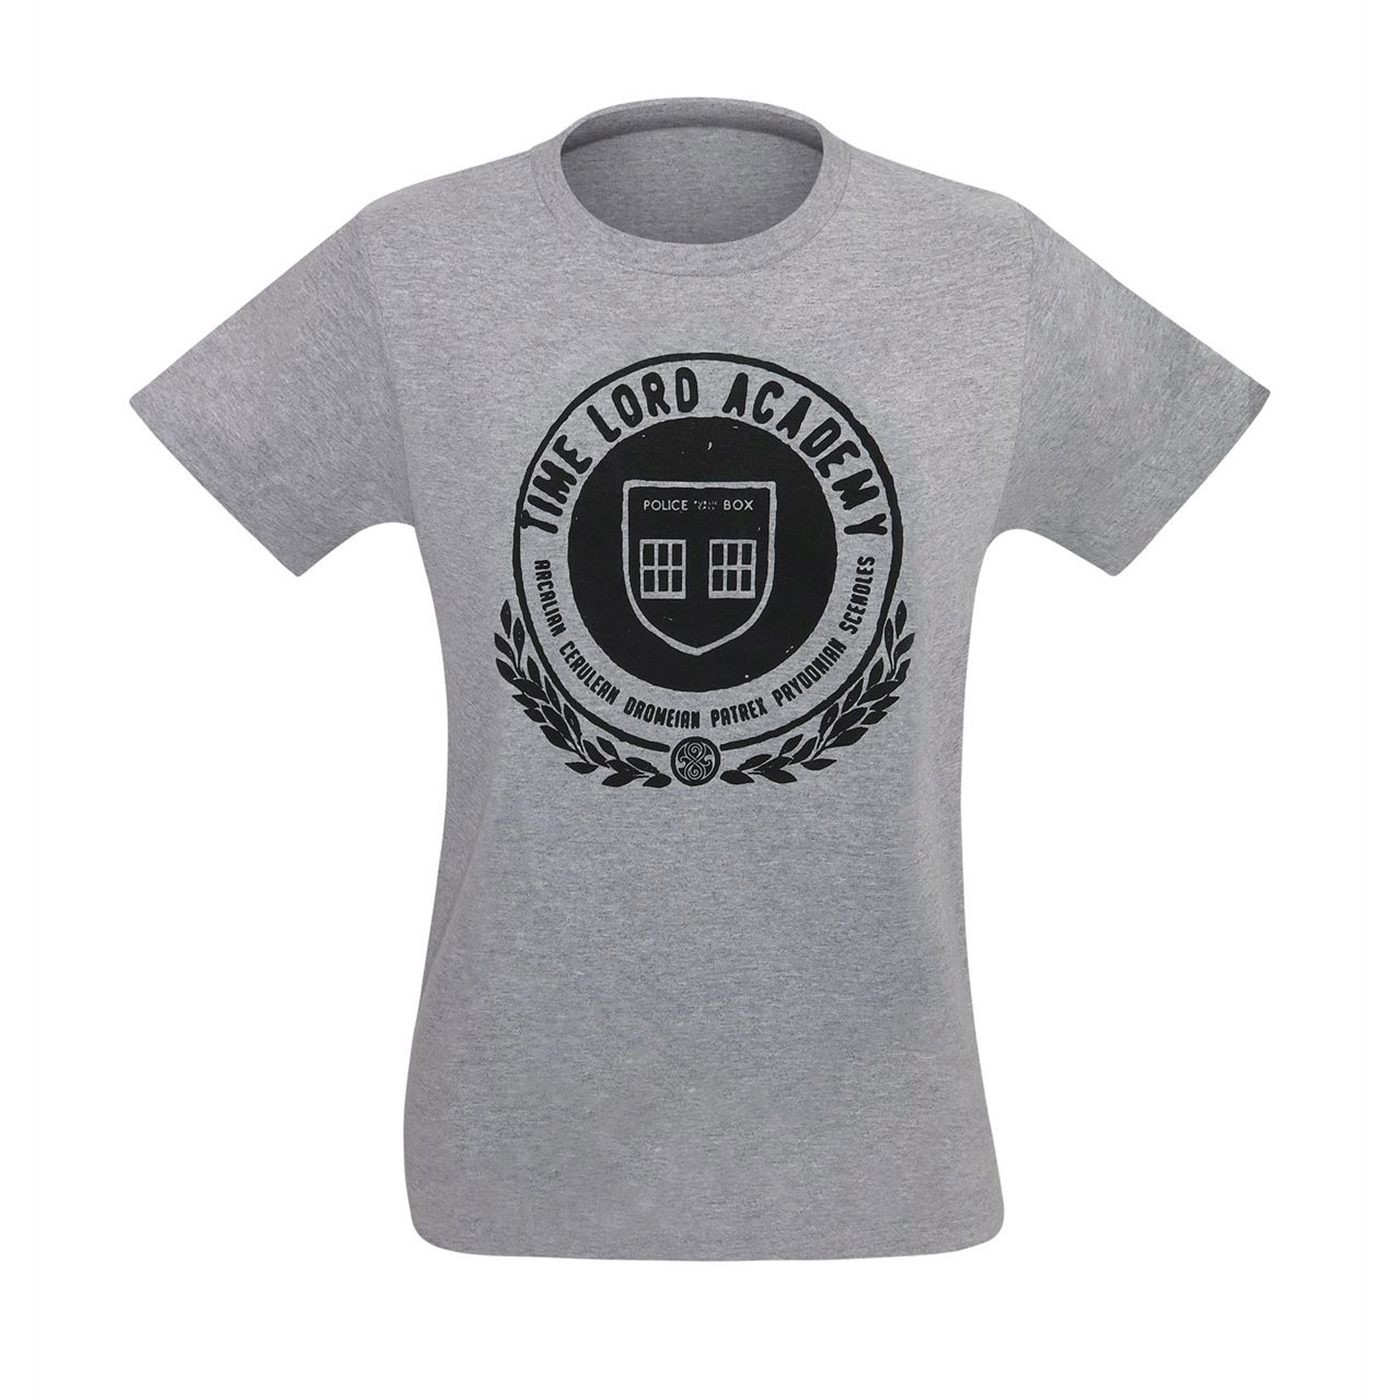 Dr. Who Time Lord Academy Men's T-Shirt